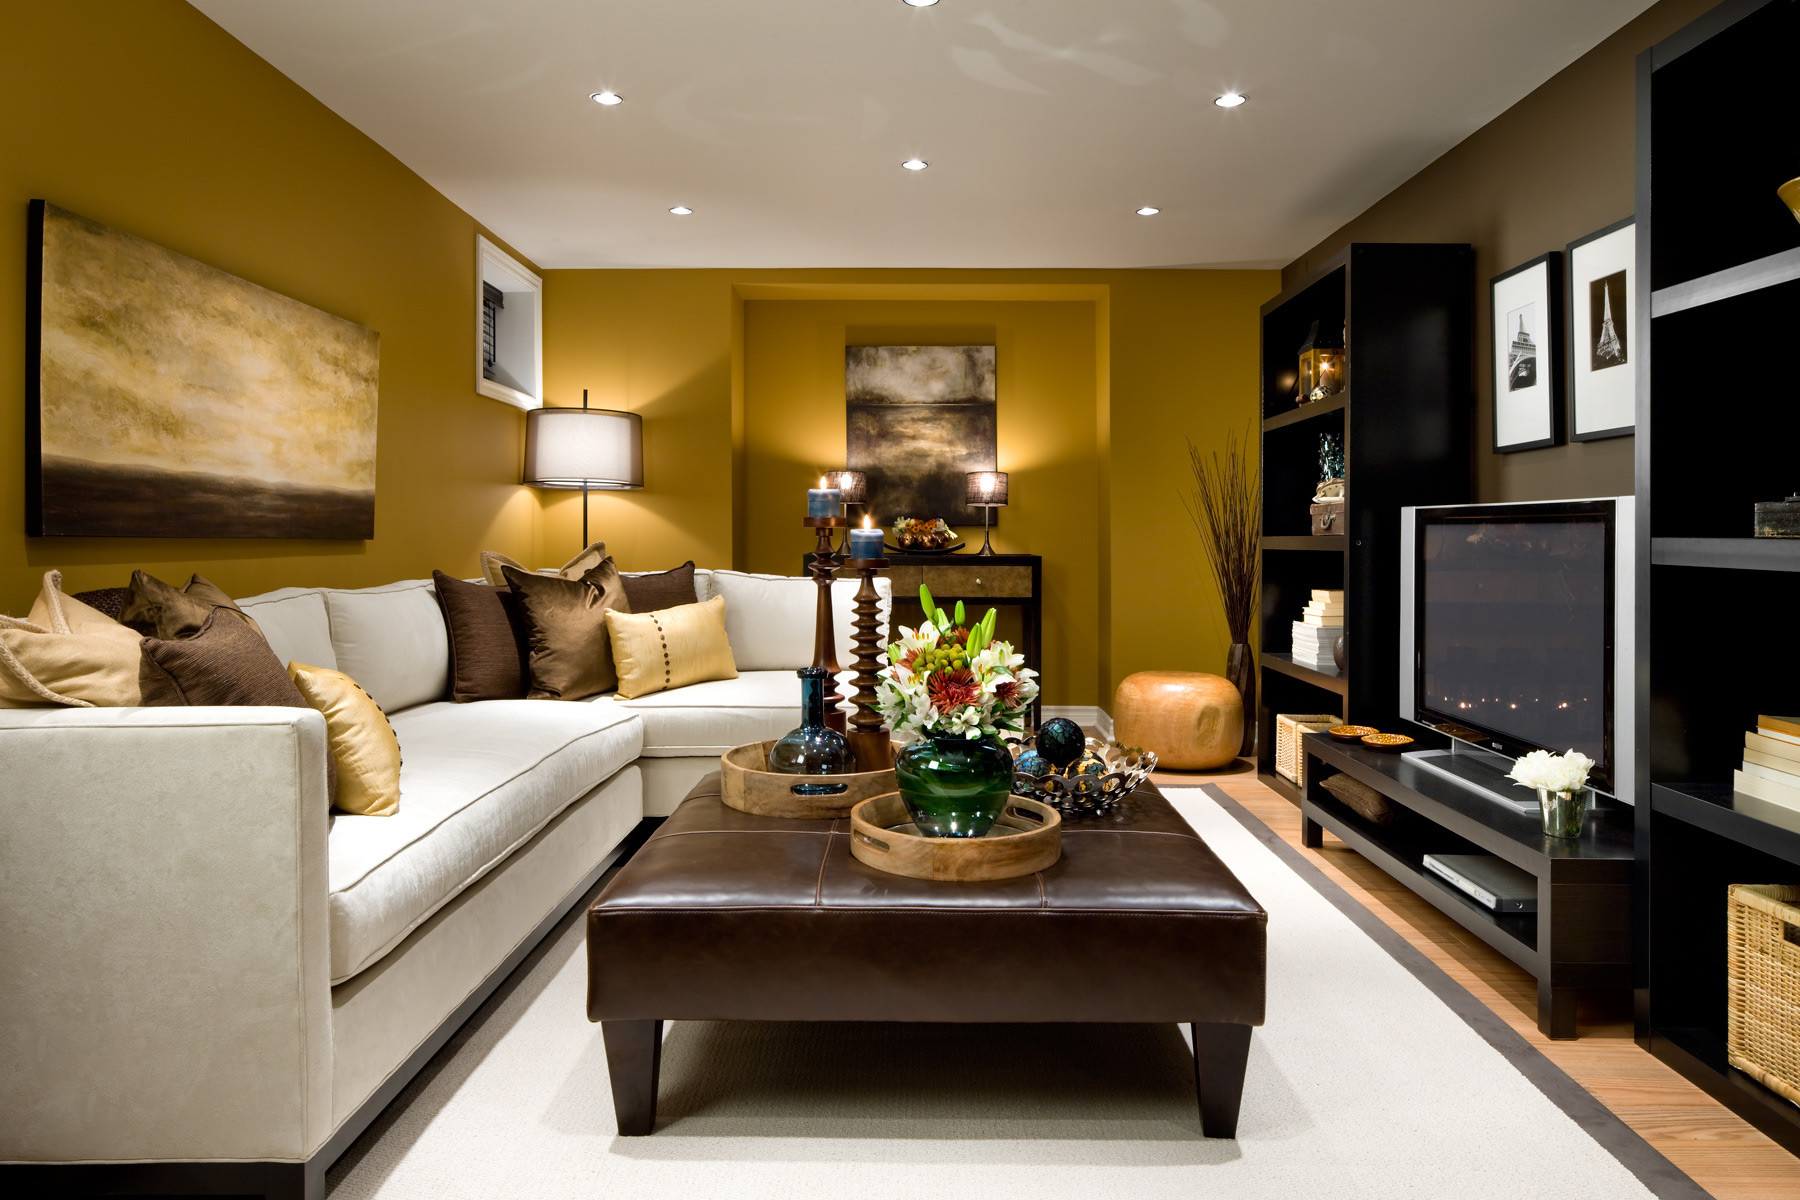 Best ideas about Living Room Remodel . Save or Pin 50 Best Small Living Room Design Ideas for 2019 Now.